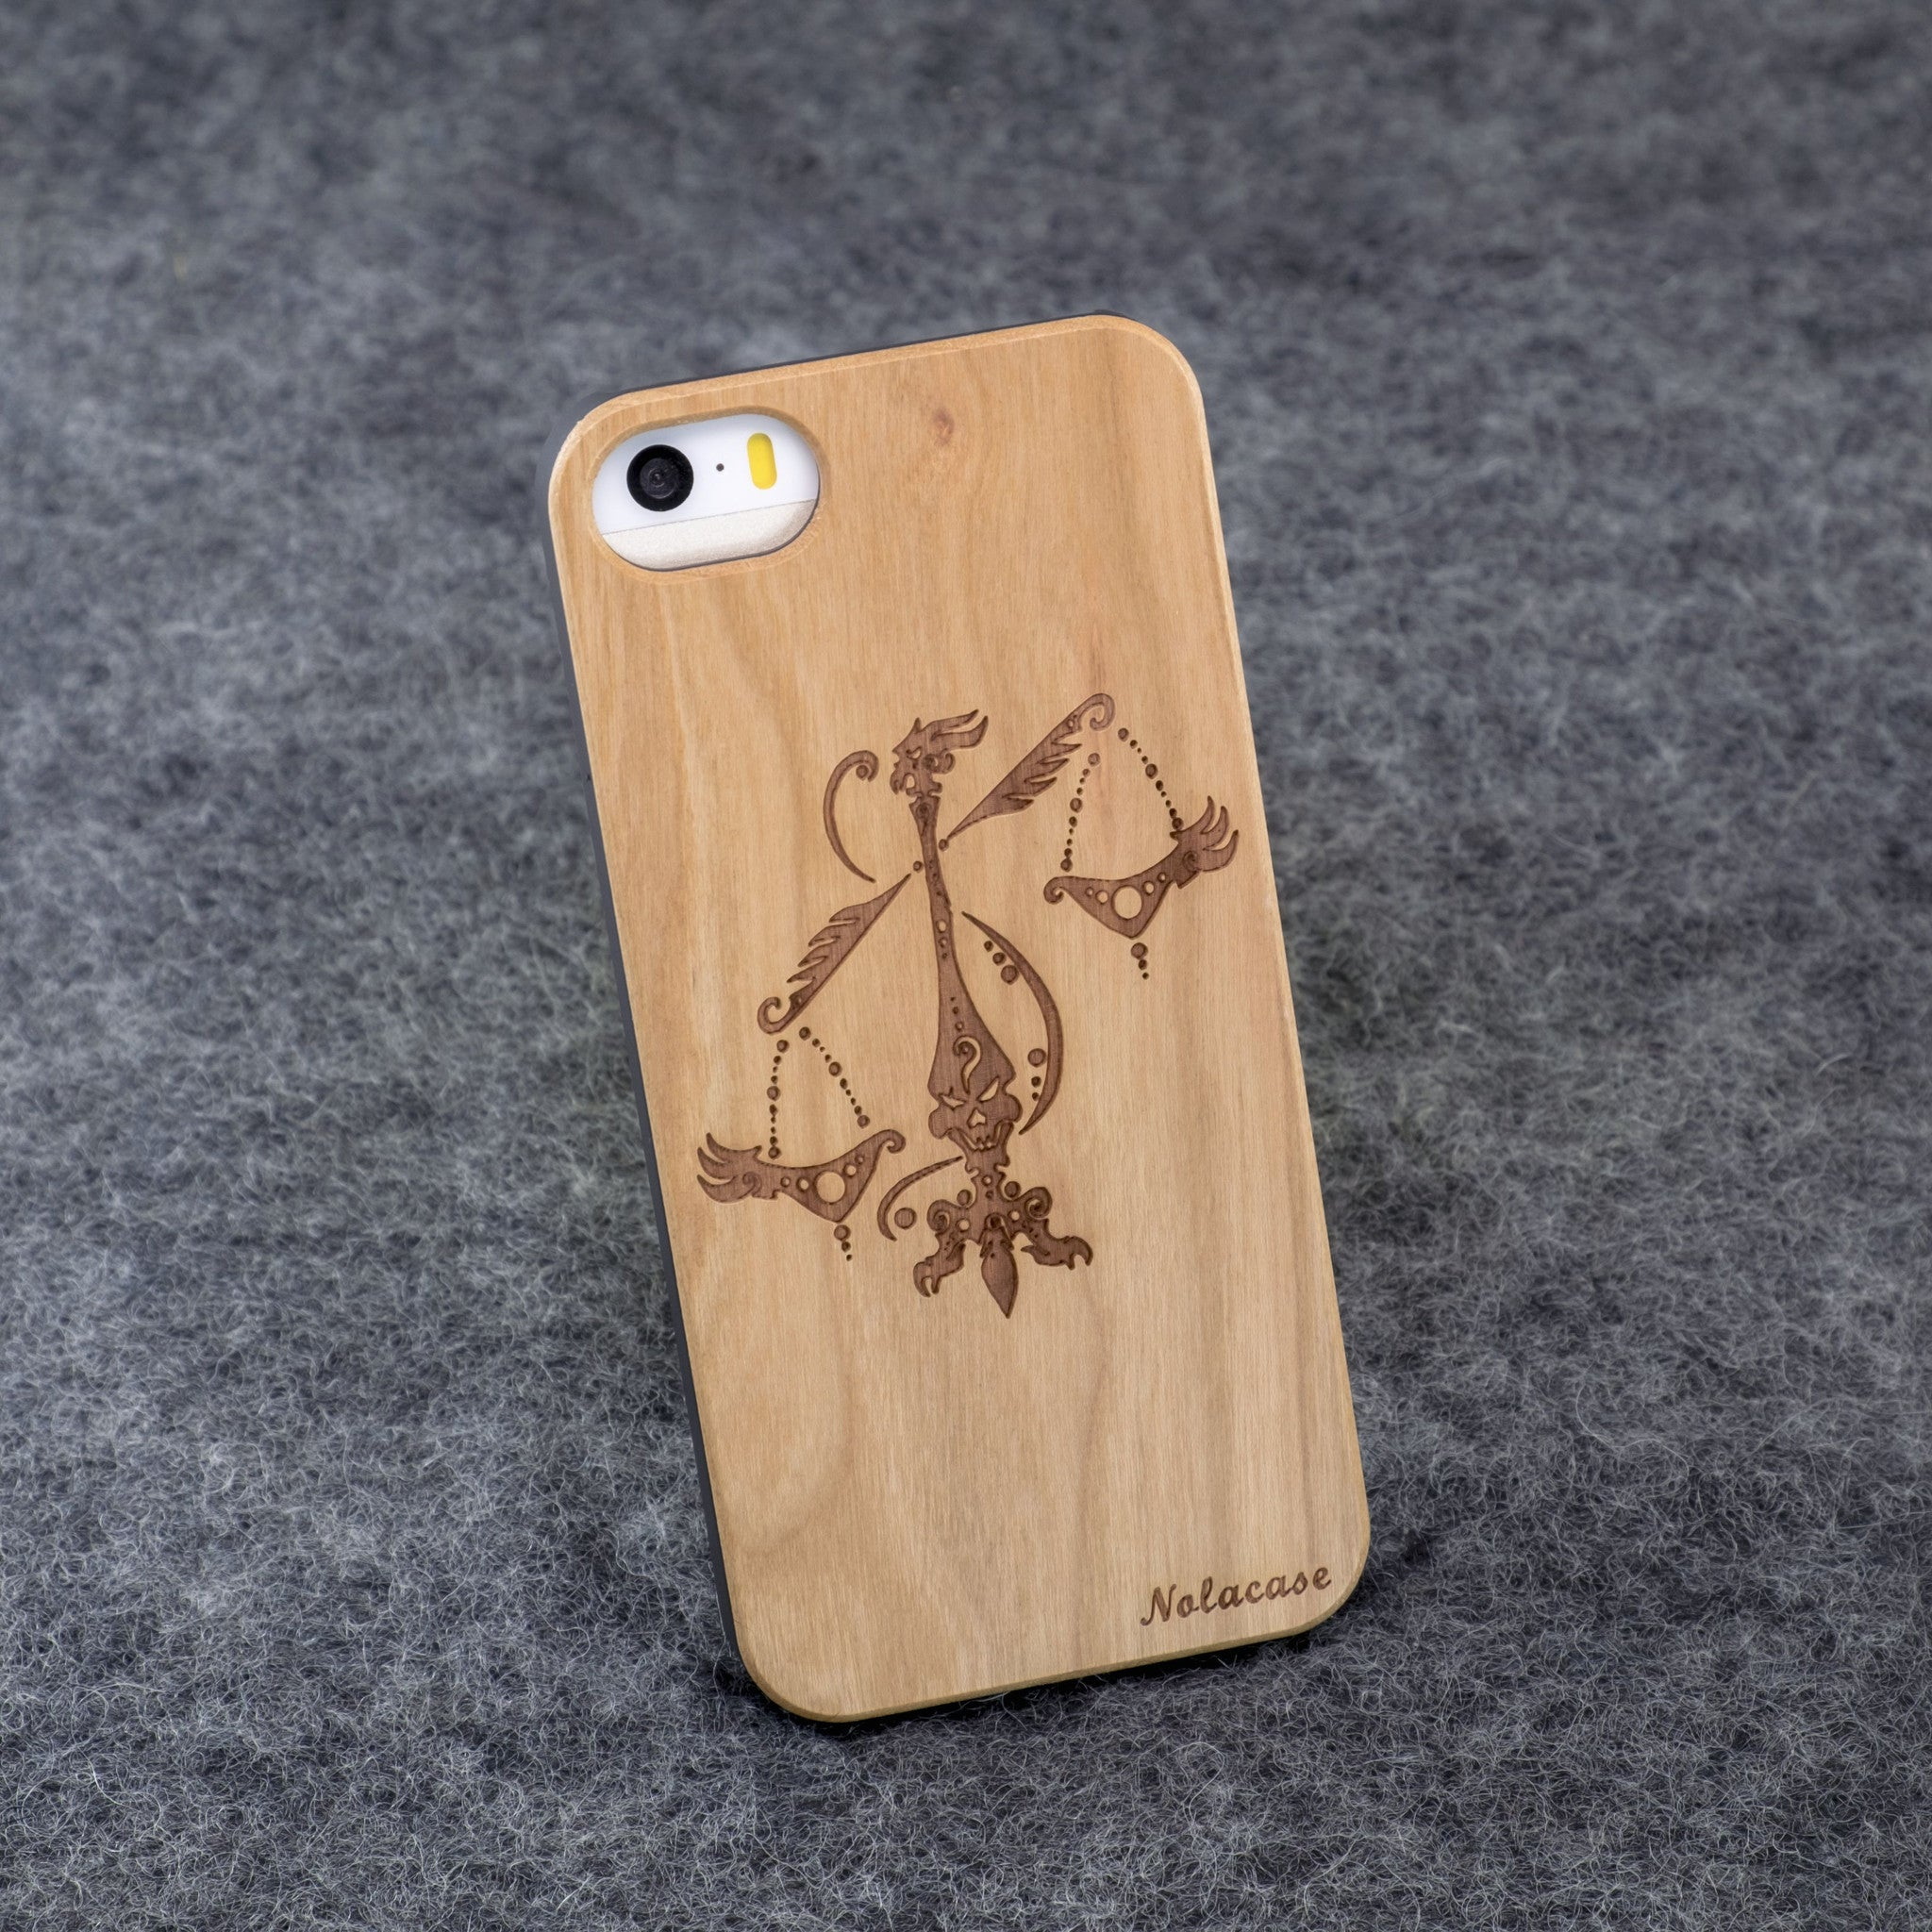 iPhone 5 / 5S Zodiac Signs: Libra Slim Wood Case - NOLACASE